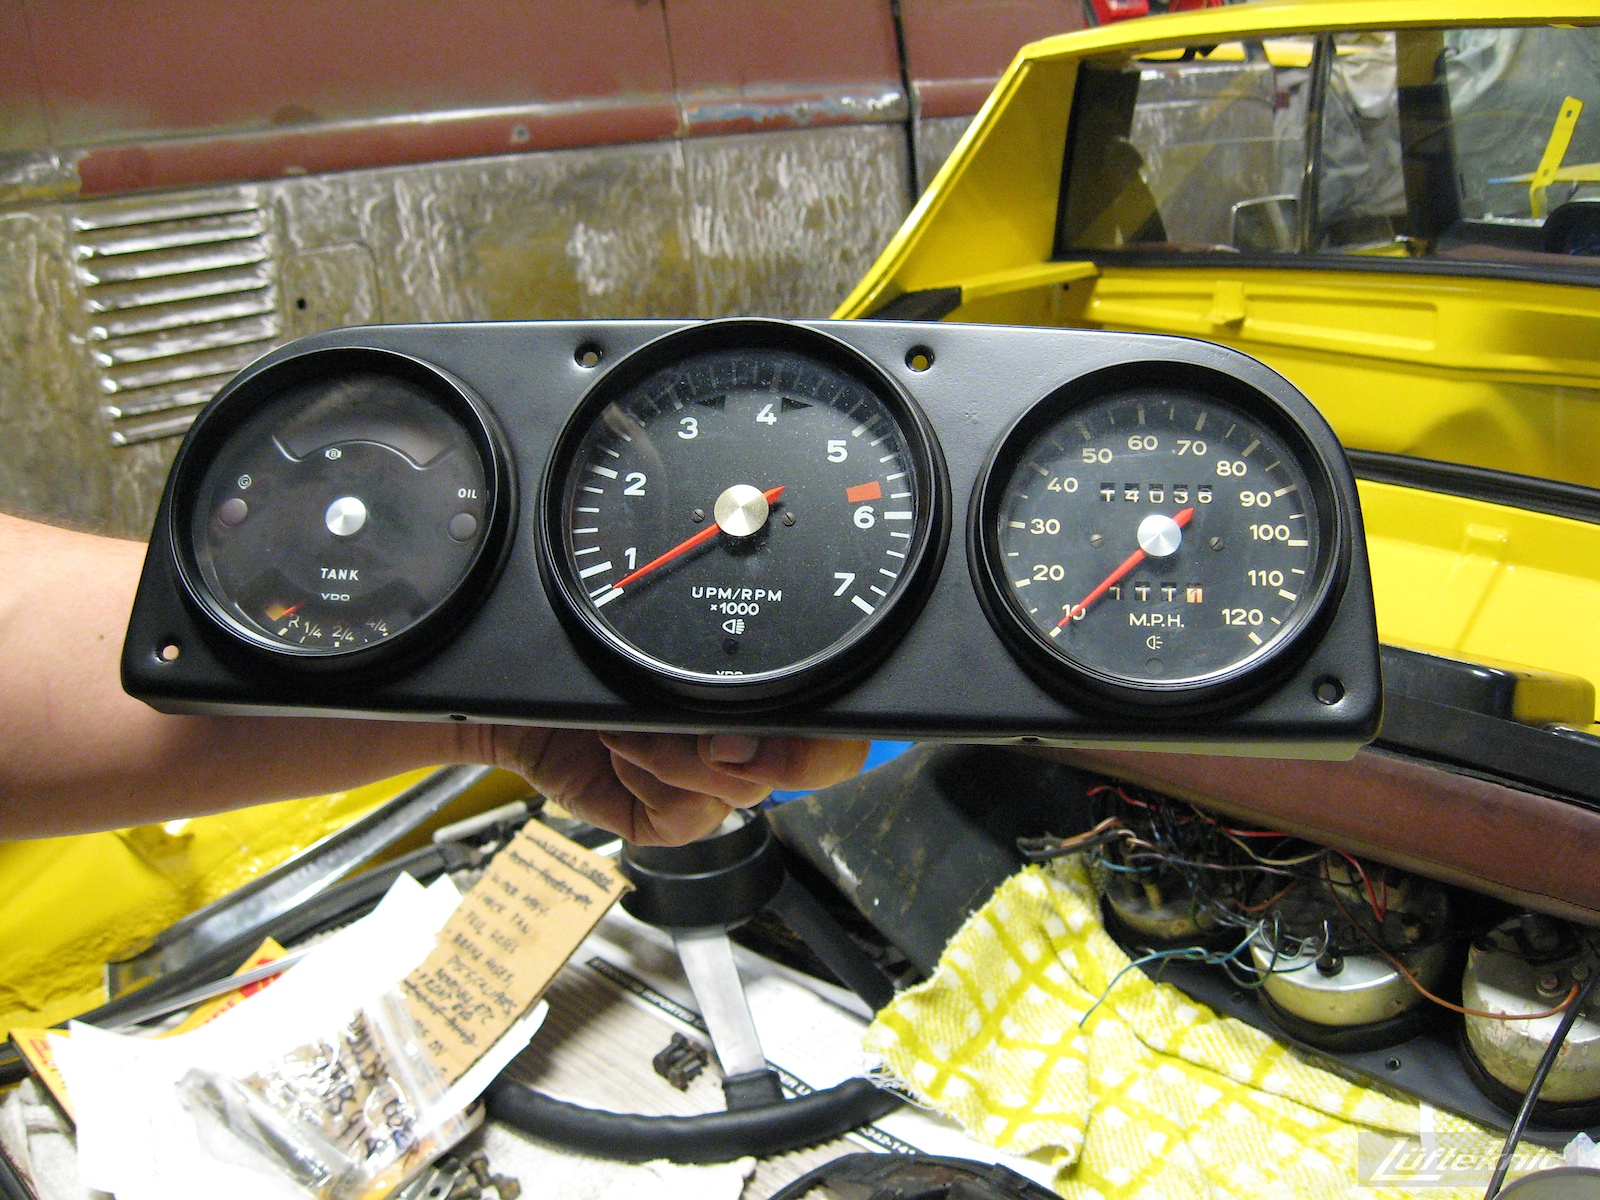 Dashboard and gauges shown for a restored yellow Porsche 914 at Lufteknic.